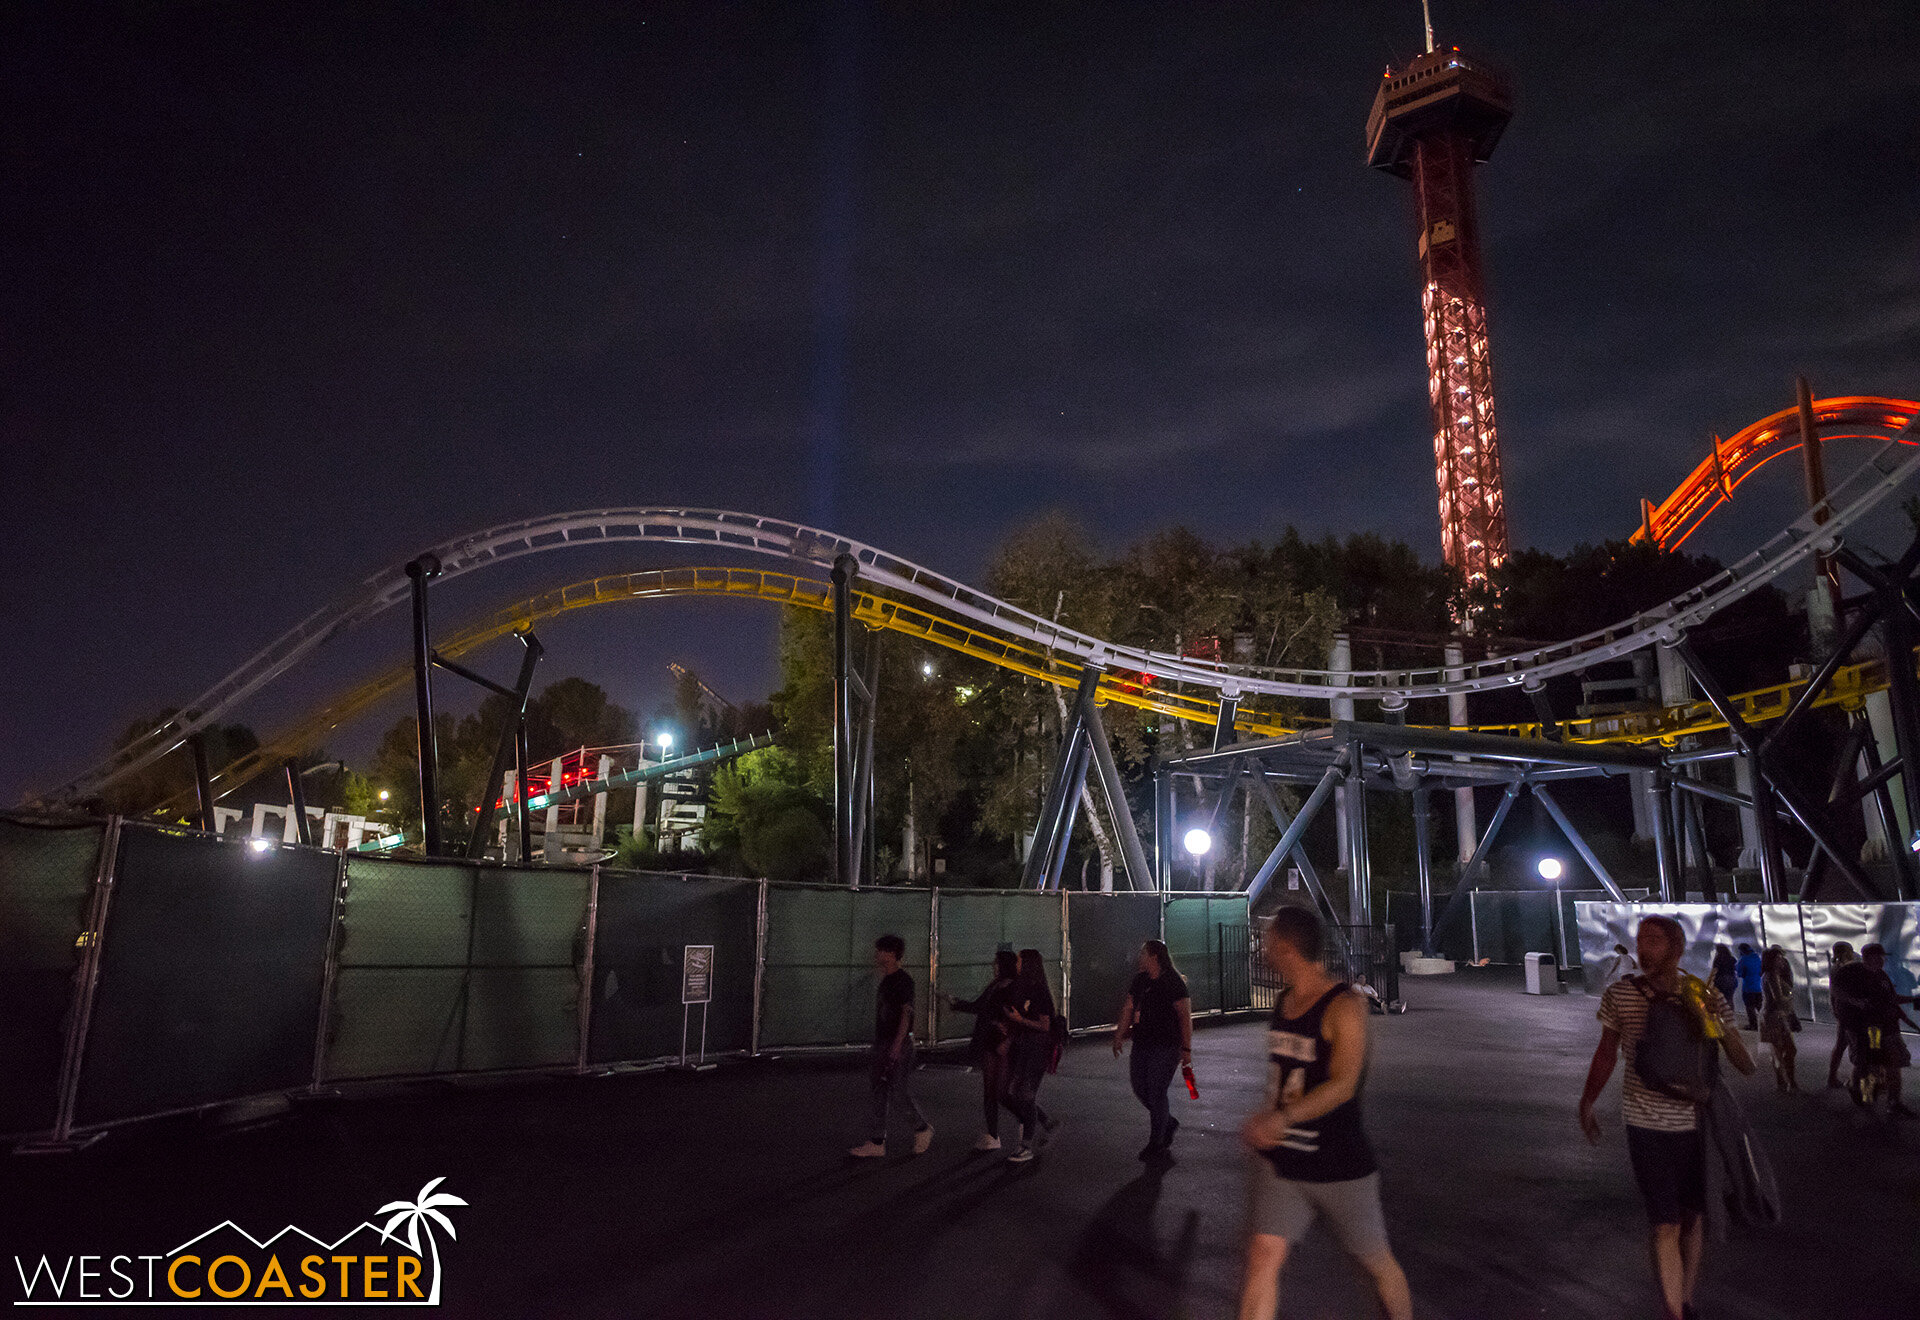 The coaster is actually supposed to open before the end of the year.  We swear!!  Or, well, Six Flags does.